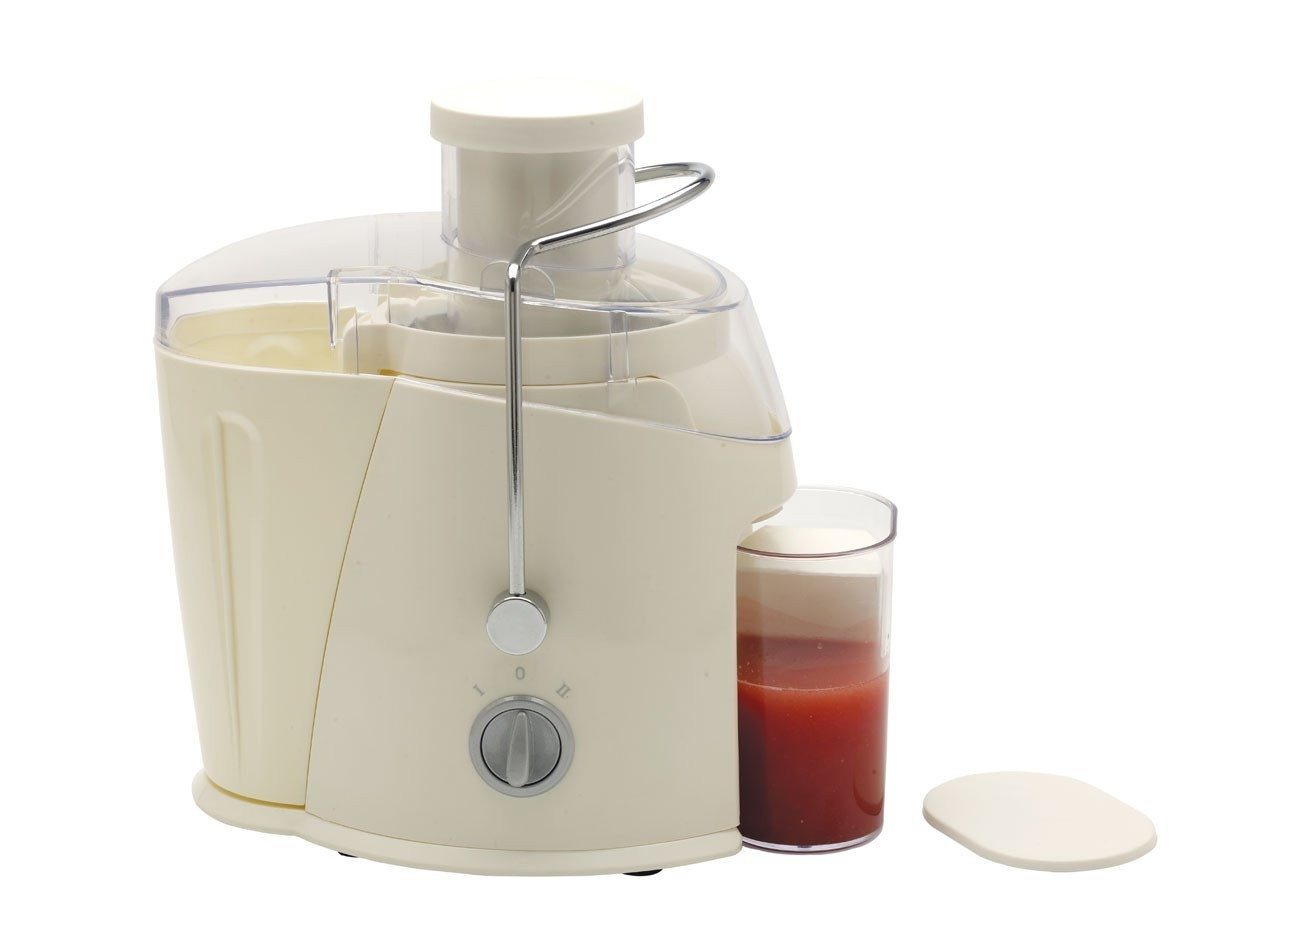 Boss Juicemaxx B607 400-Watt Juice Extractor